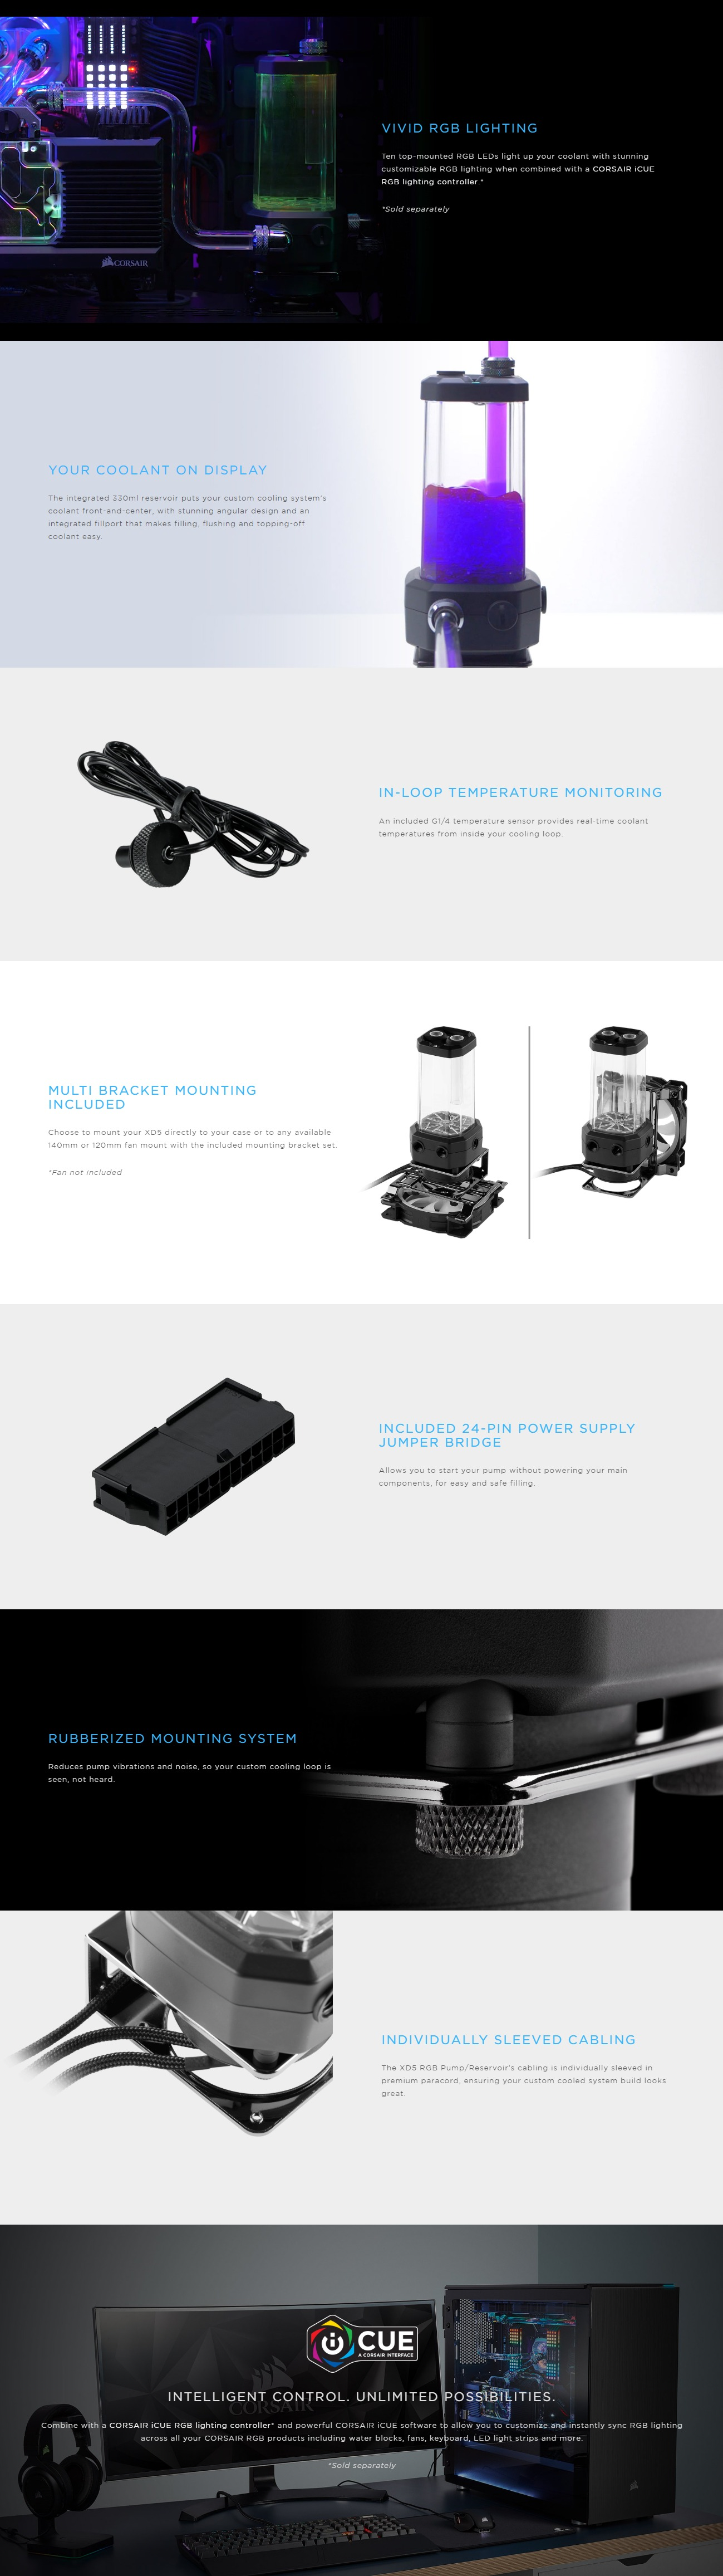 A large marketing image providing additional information about the product Corsair Hydro X Series XD5 RGB Pump/Resevoir Combo - Additional alt info not provided